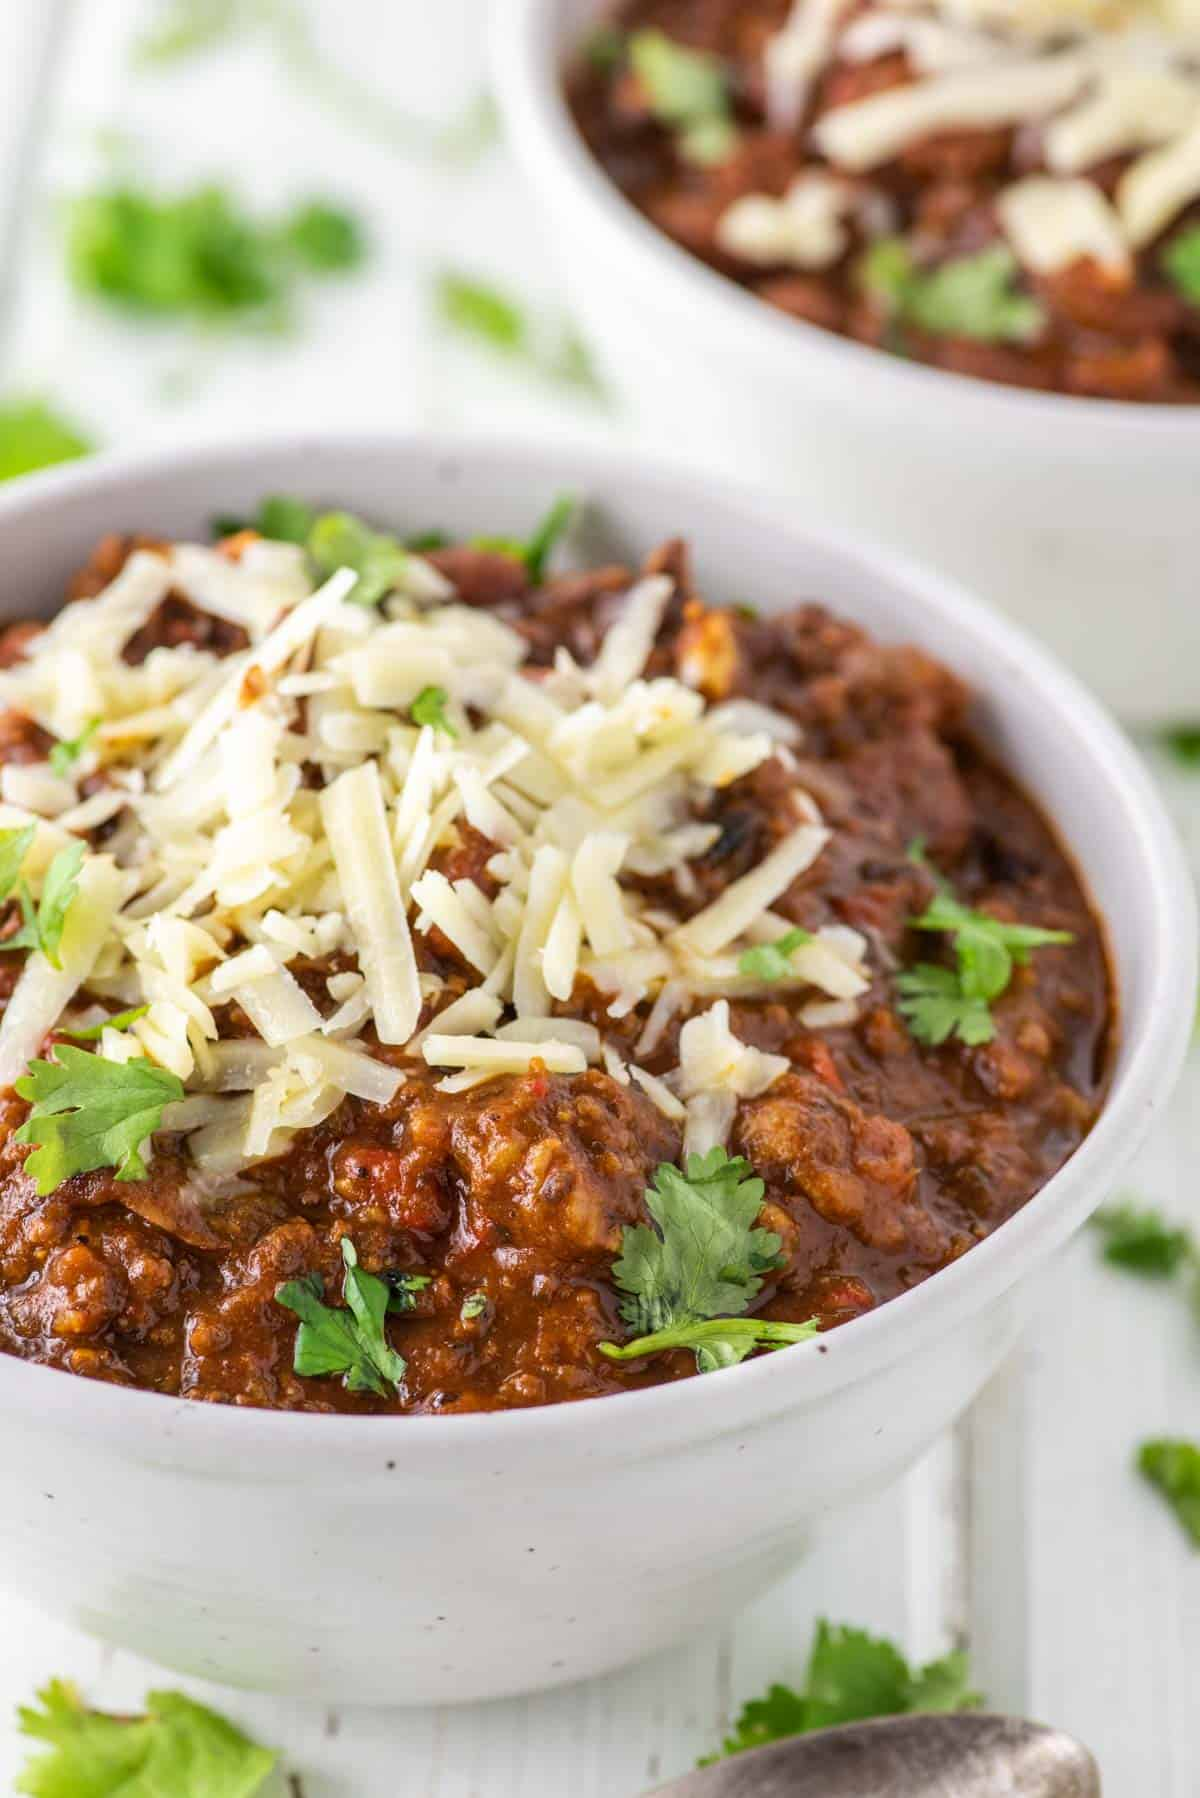 bowl of southern homemade chili with cheese on top